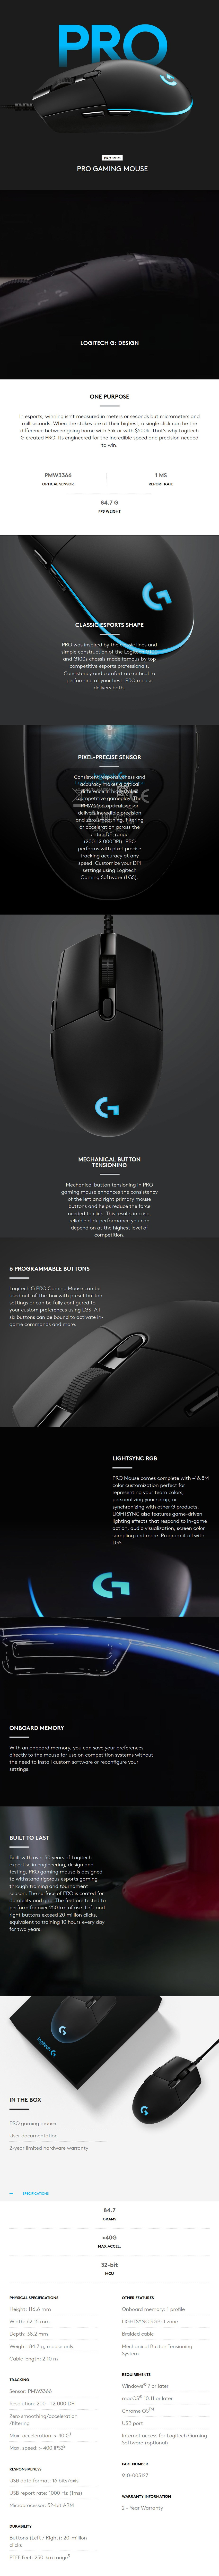 Logitech G Pro Gaming RGB Optical Mouse Display Overview 1